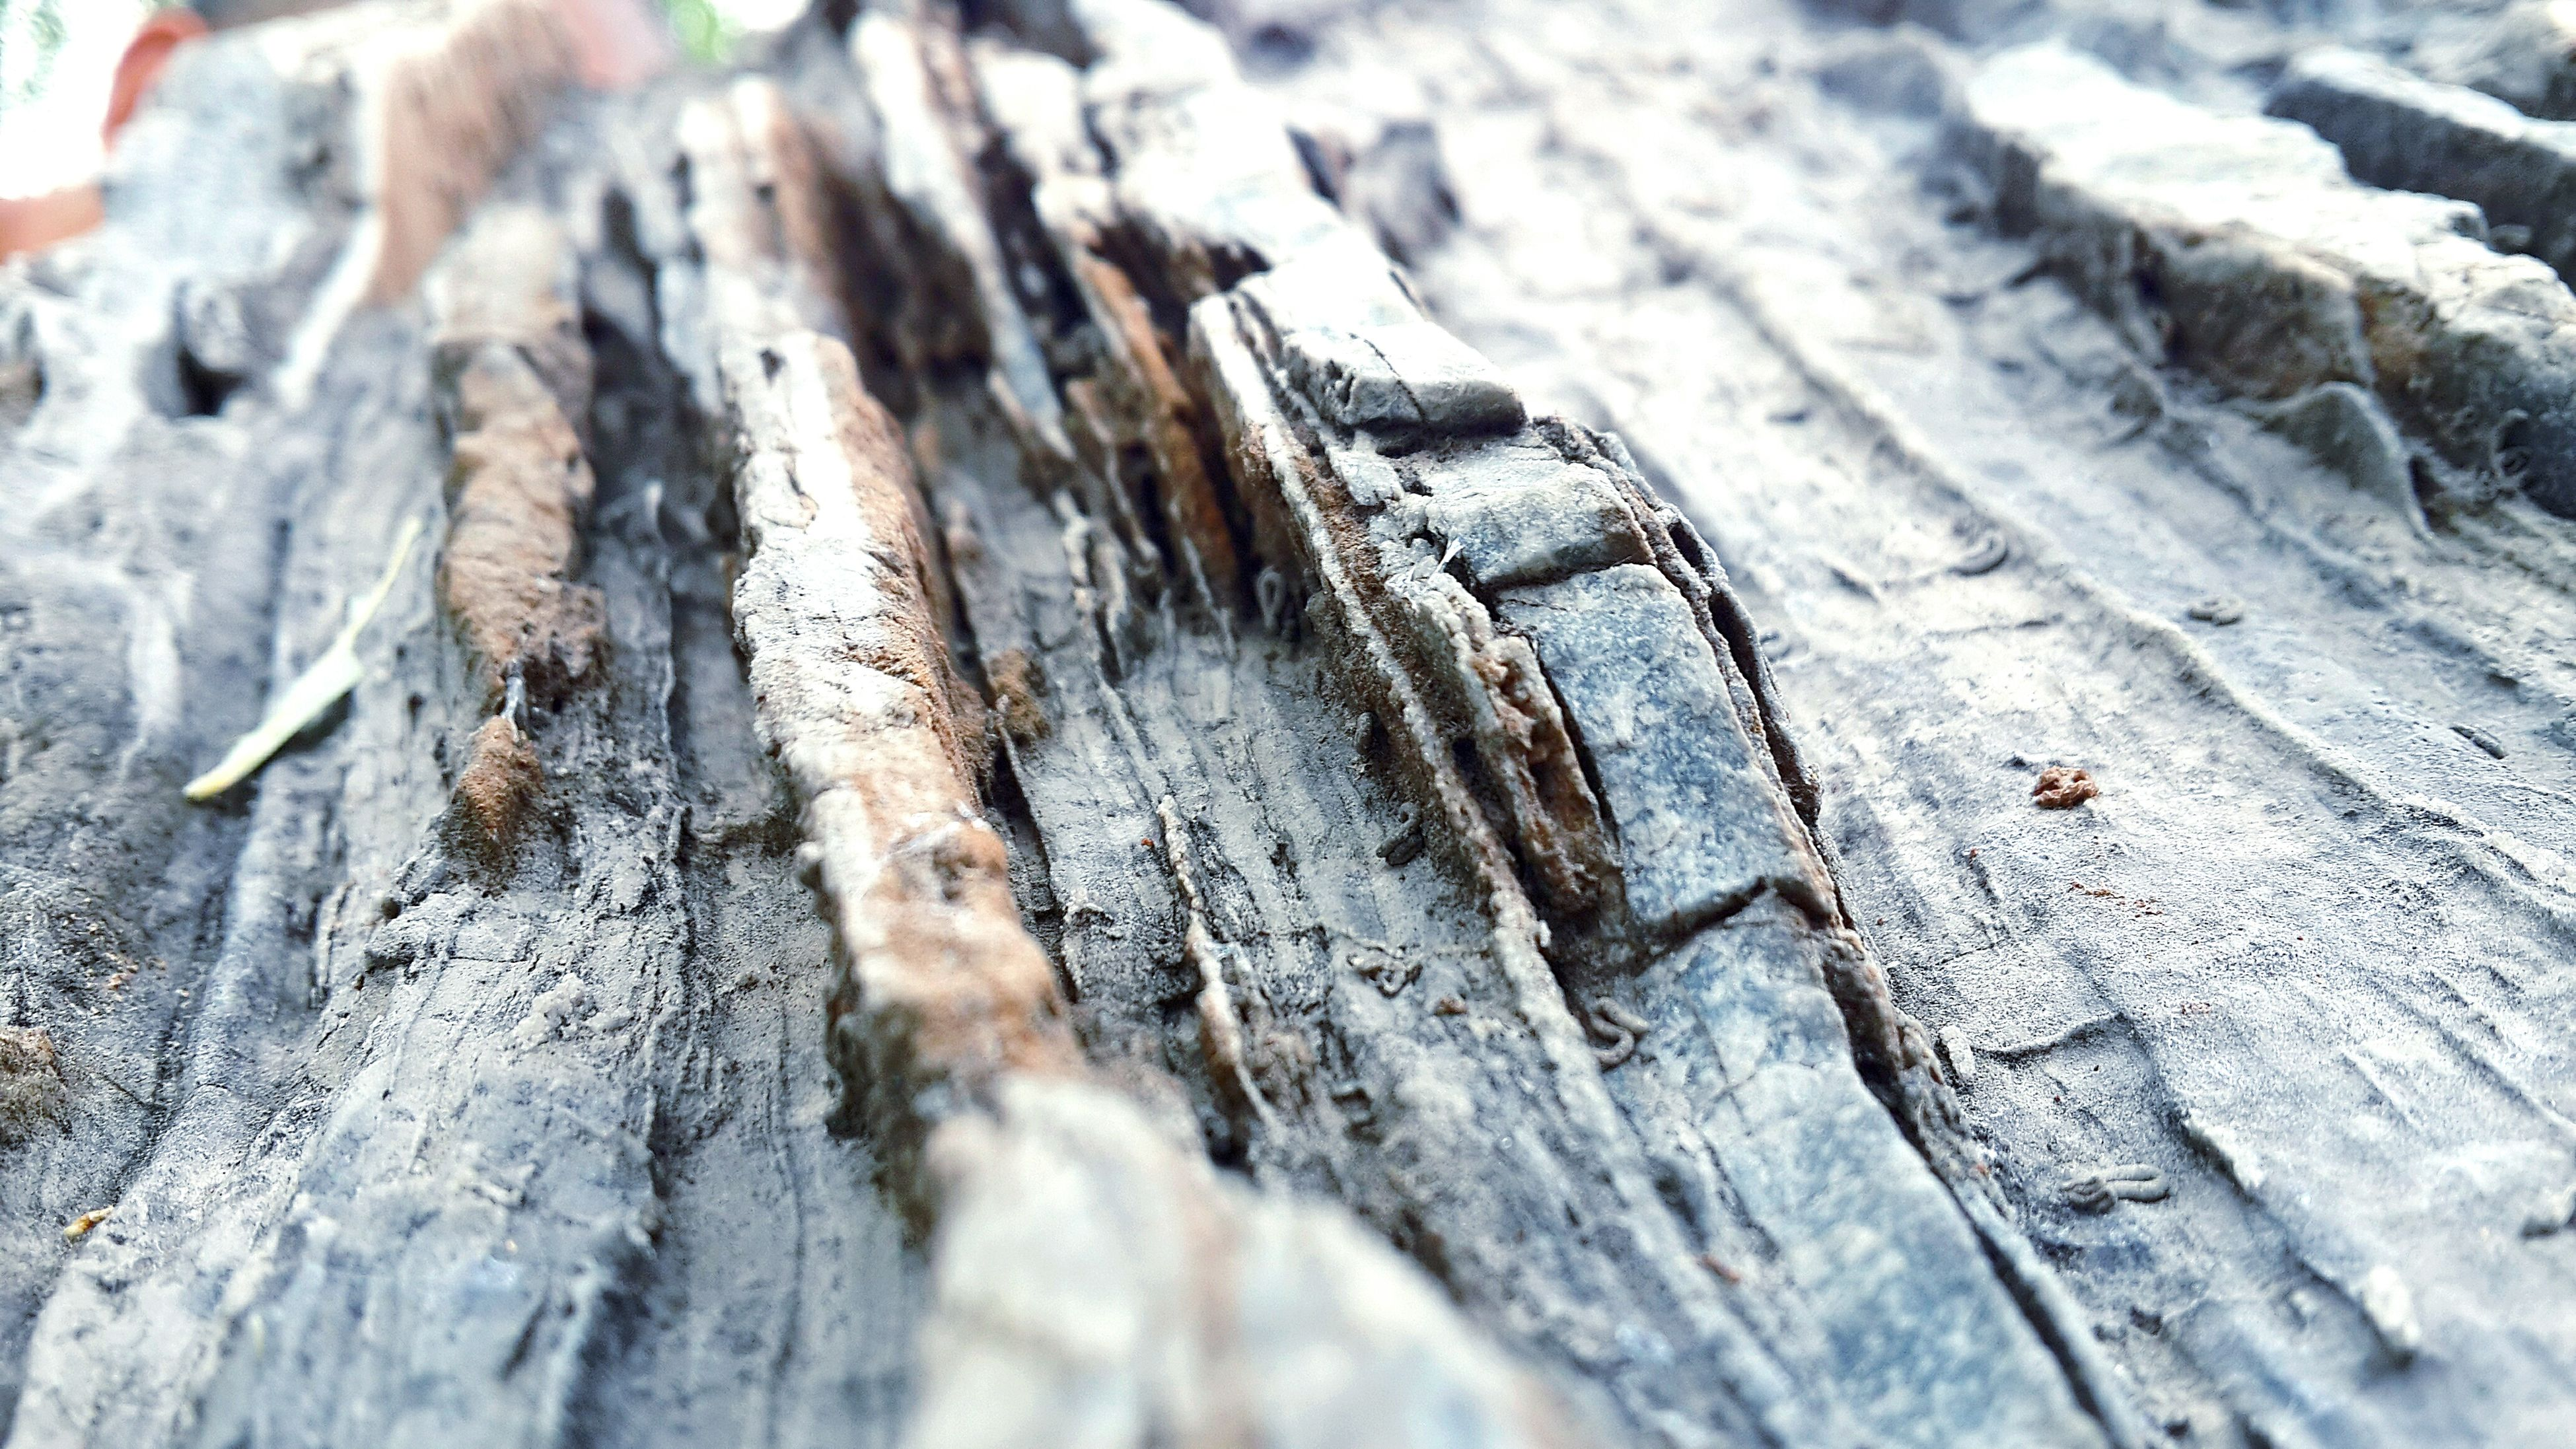 wood - material, wooden, wood, textured, selective focus, close-up, rough, plank, high angle view, weathered, nature, day, outdoors, no people, focus on foreground, log, damaged, tree trunk, surface level, boardwalk